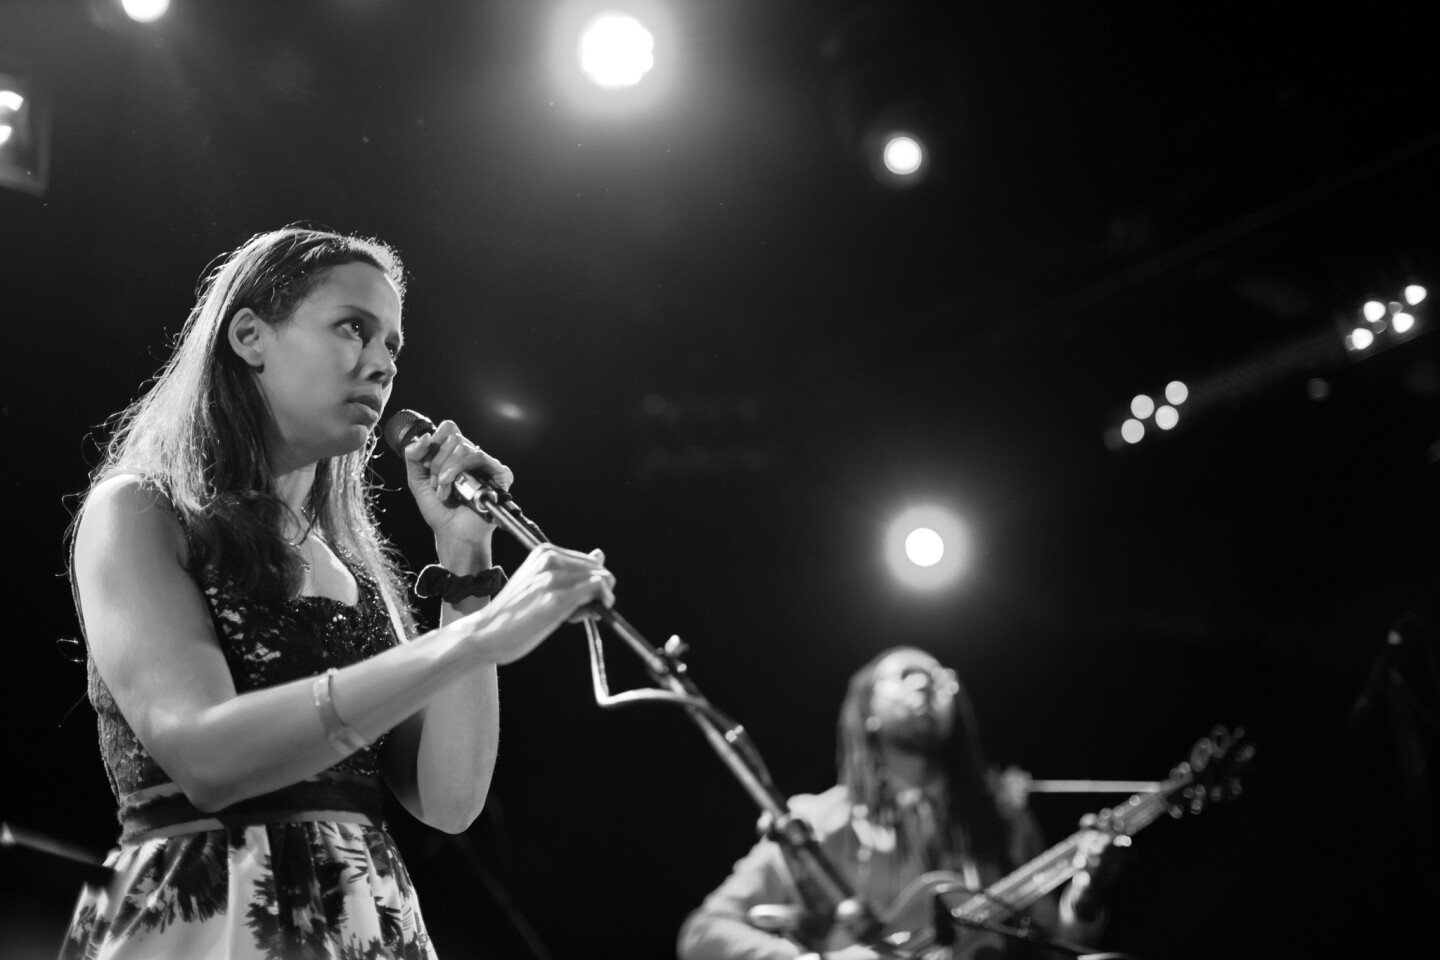 Carolina Chocolate Drops singer Rhiannon Giddens and bandmate Hubby Jenkins perform at the Americana Music Assn.'s salute to the Everly Brothers on Jan. 25 at the Troubadour in West Hollywood.